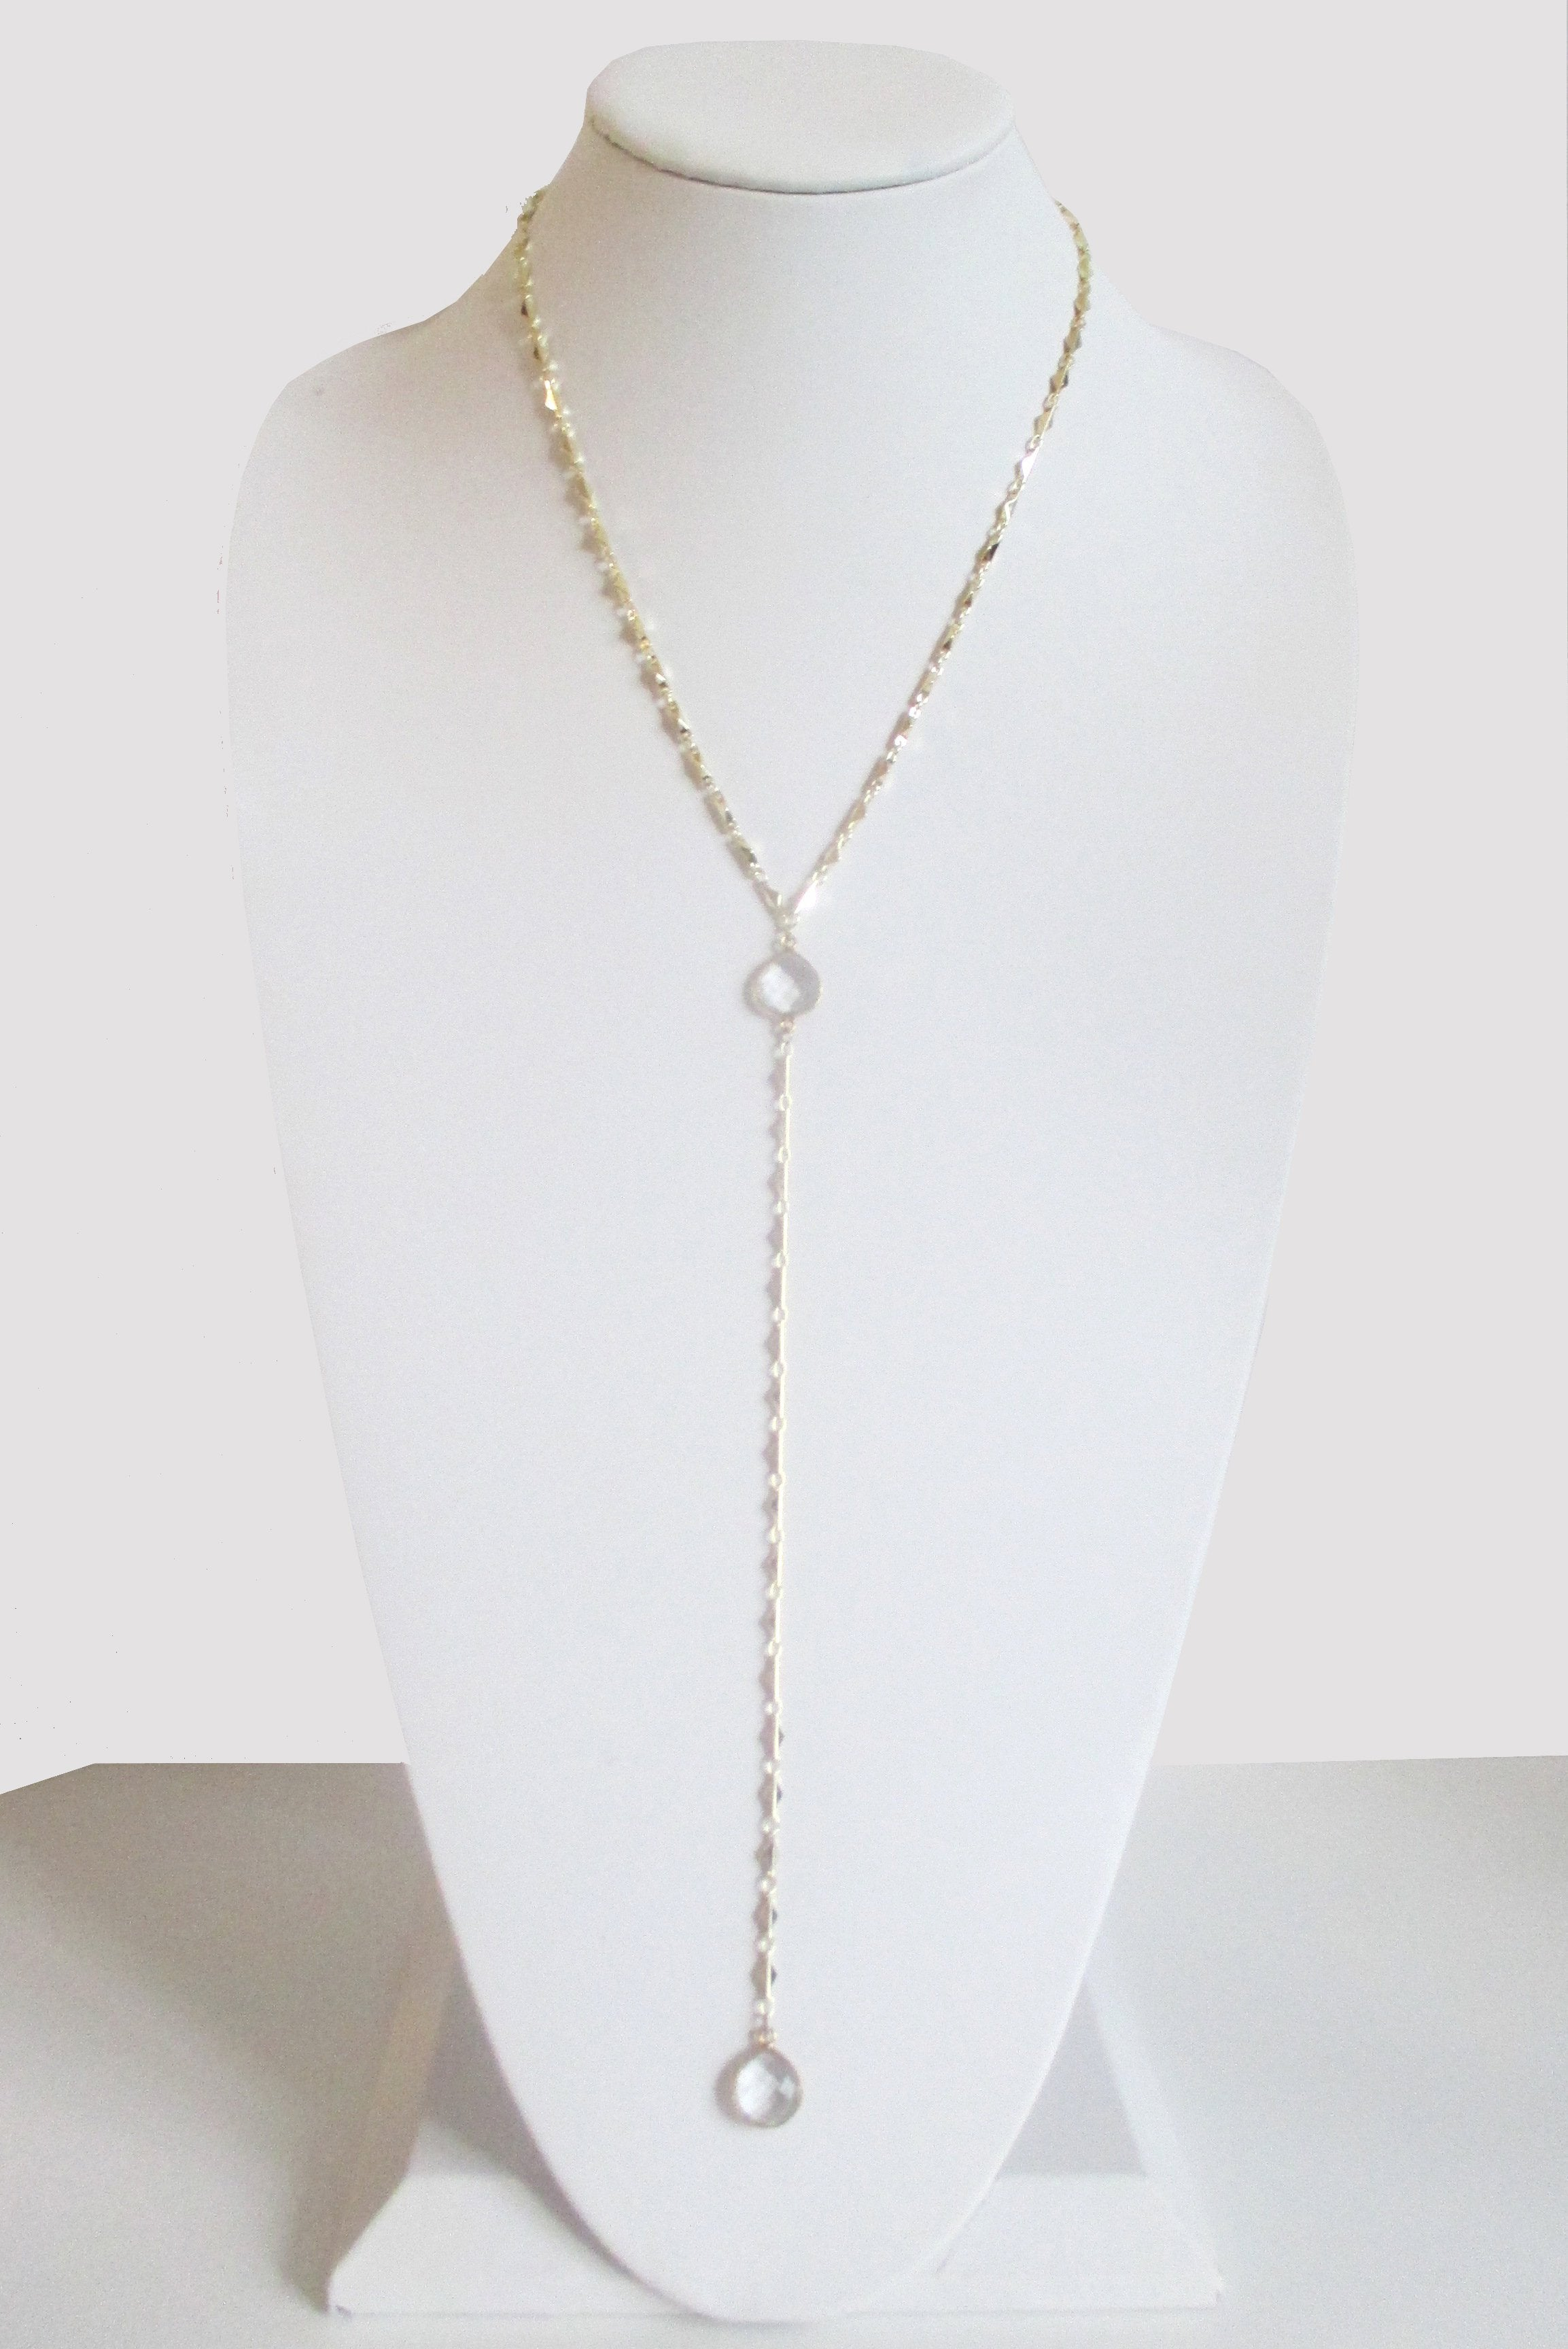 ARIANNA CECELIA Y NECKLACE CLEAR QUARTZ